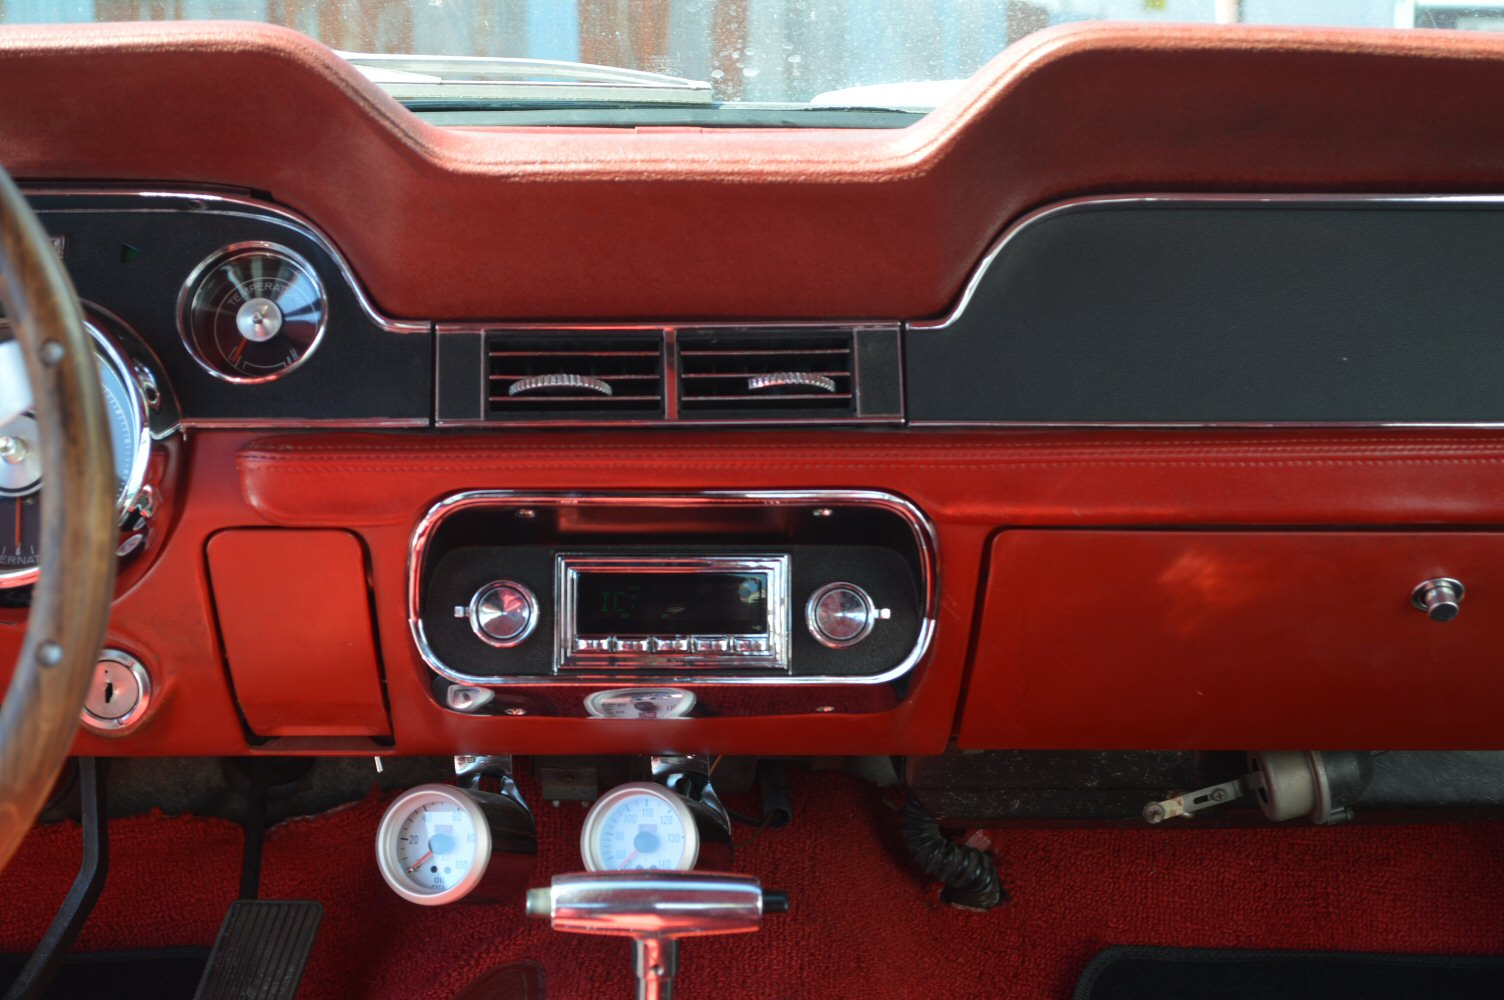 1967 Ford Mustang with RetoSound Radio Install by Phoenix Audio NZ (3).jpg